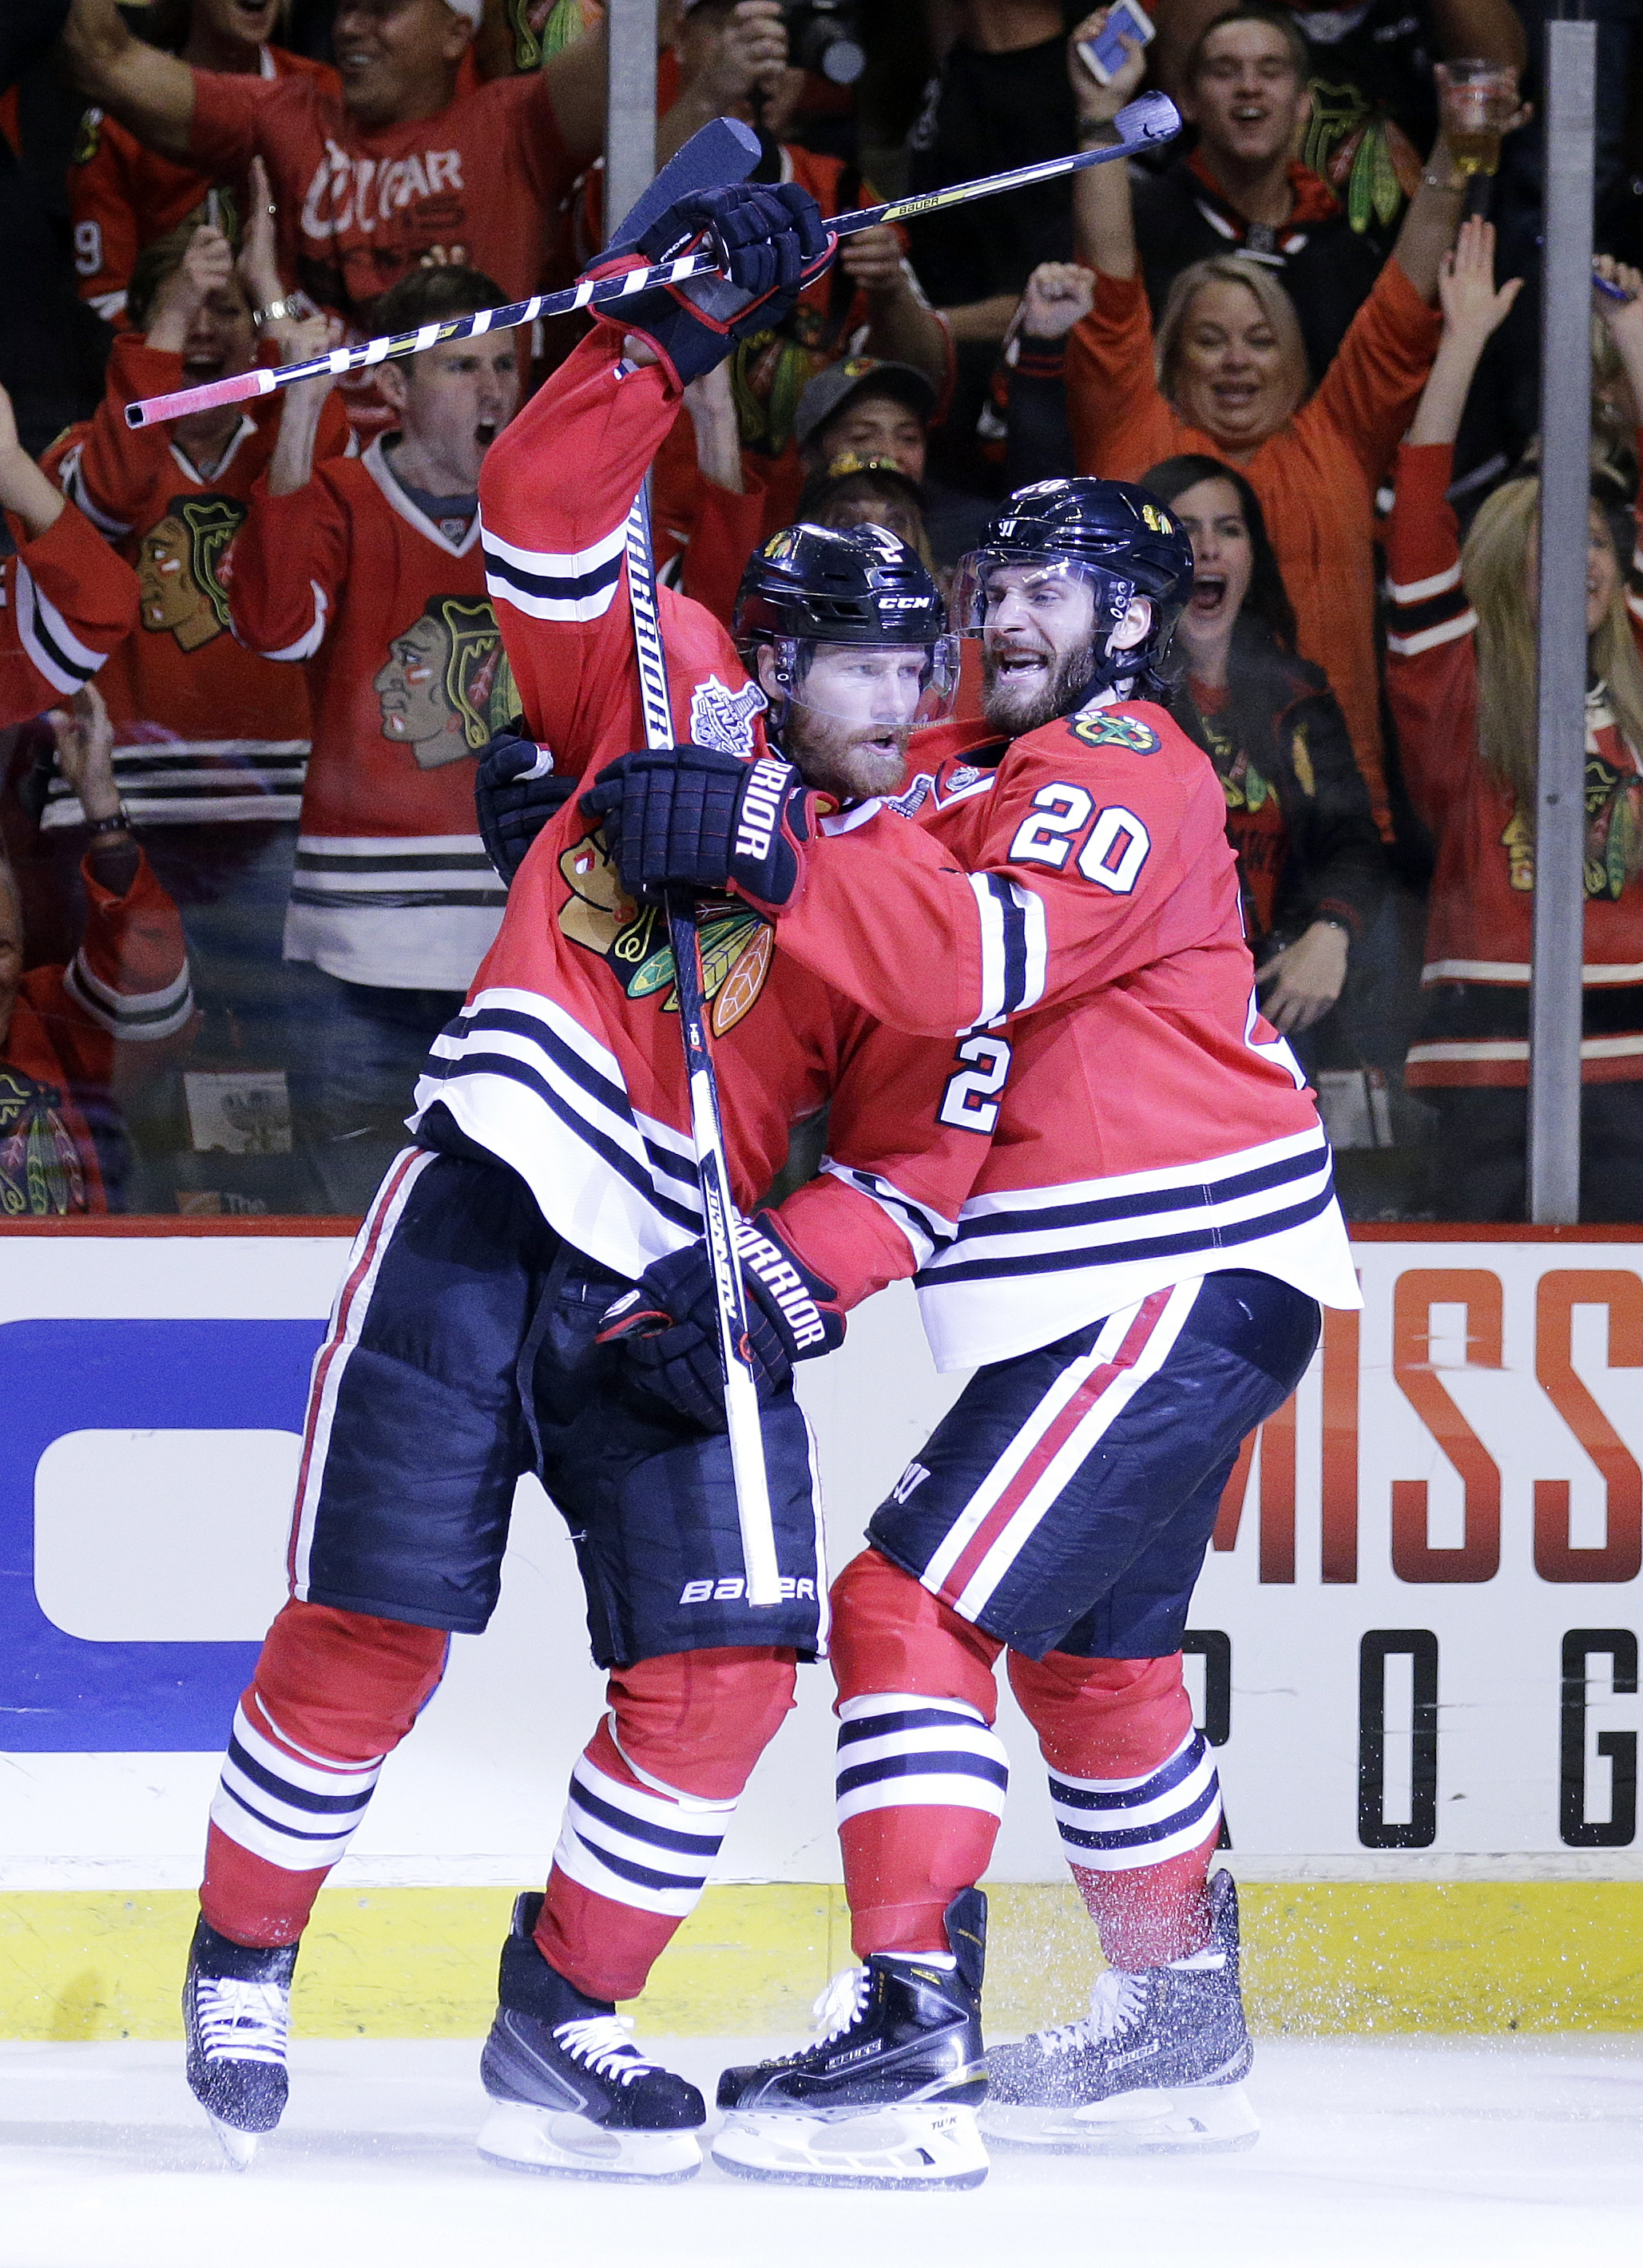 Chicago Blackhawks' Duncan Keith, left, is congratulated by teammate Brandon Saad after scoring a goal during the second period in Game 6 of the NHL hockey Stanley Cup Final series on against the Tampa Bay Lightning Monday, June 15, 2015, in Chicago. (AP